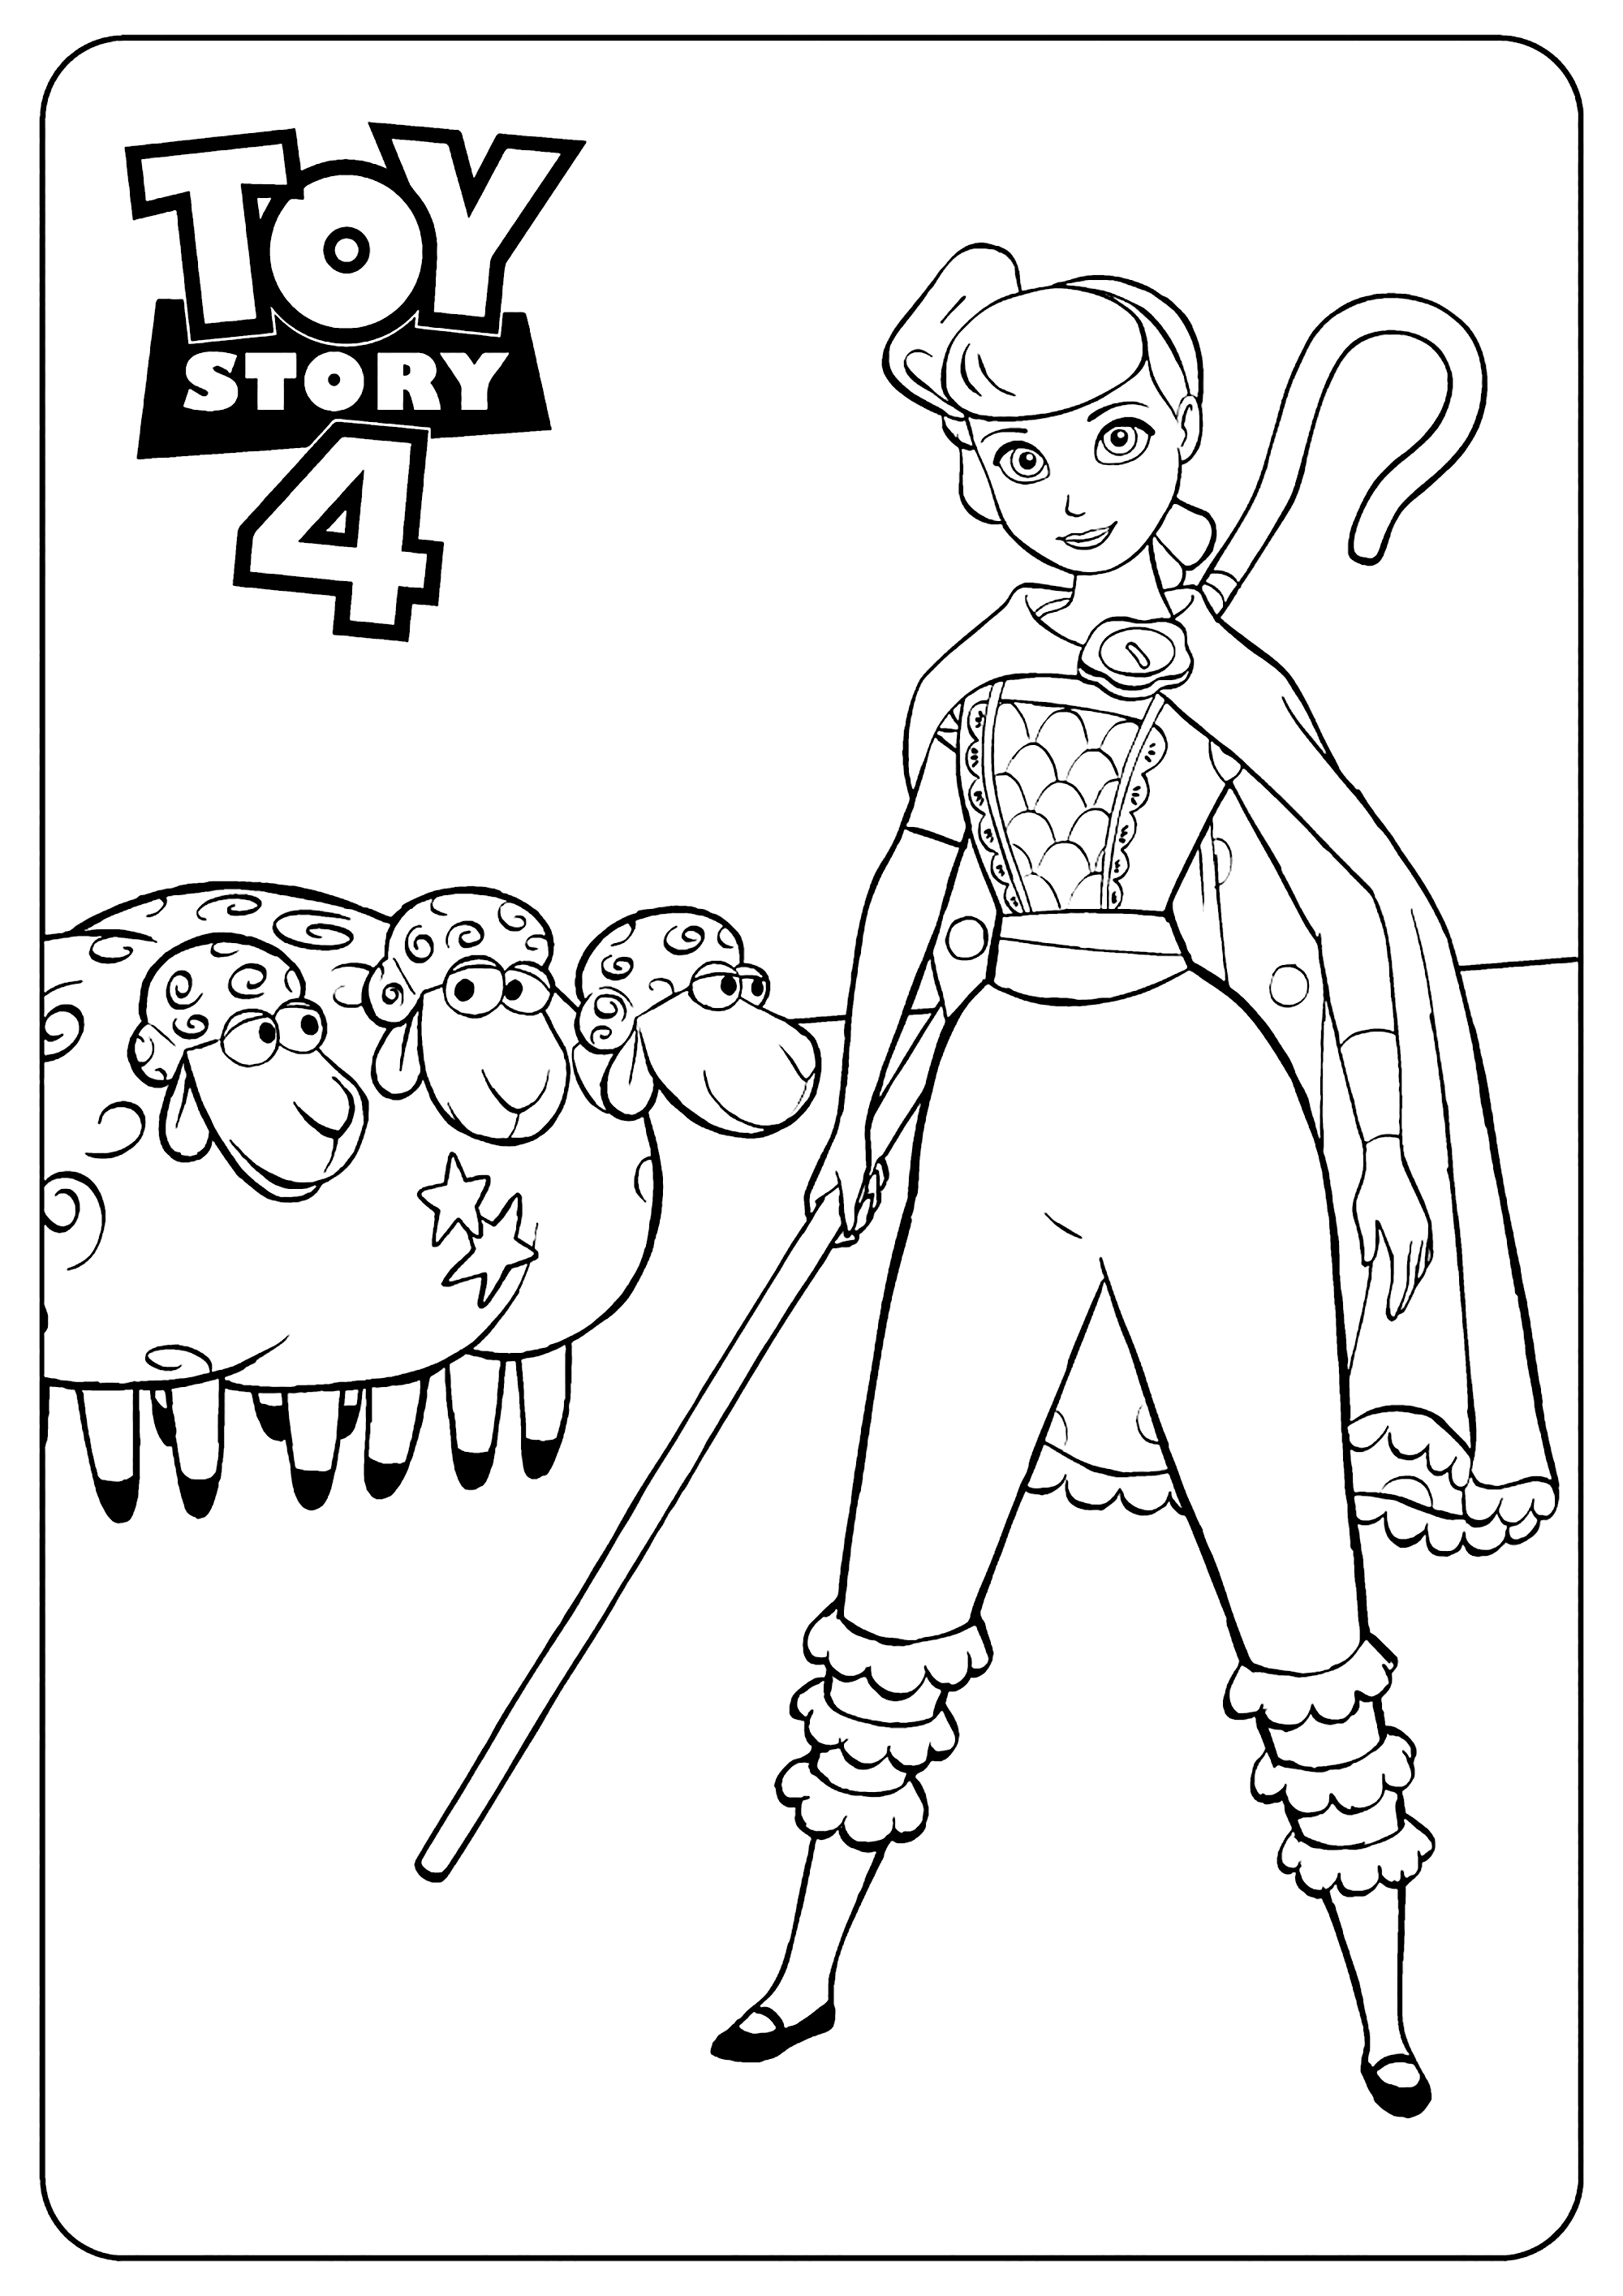 coloring toy story 4 toy story 4 coloring pages to you toy story 4 coloring 4 story coloring toy